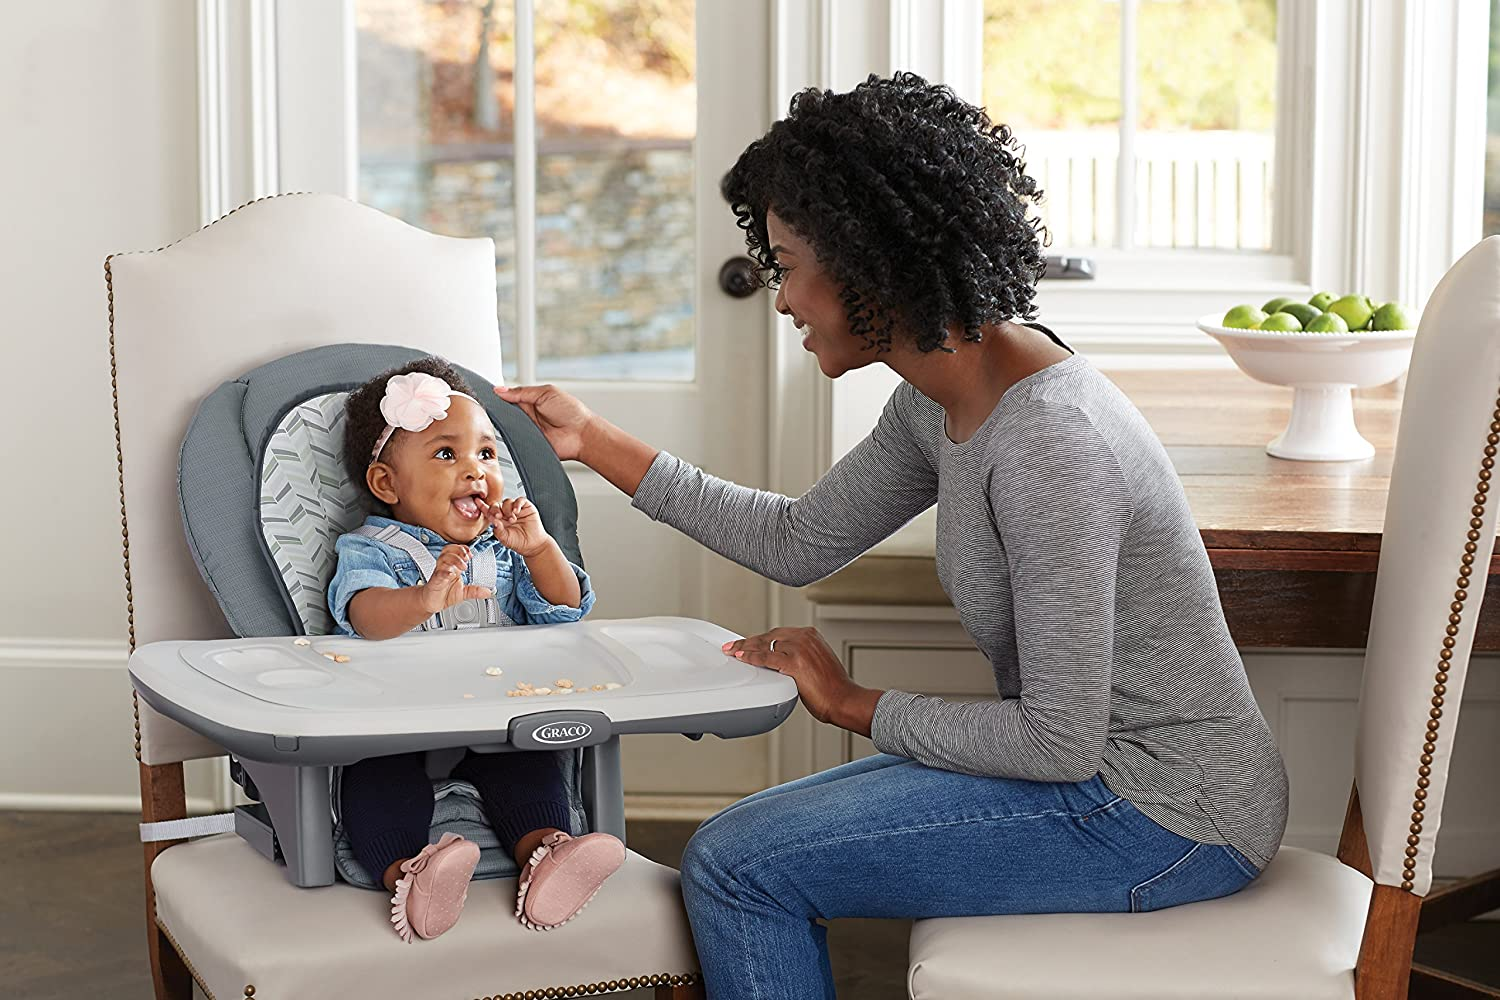 Landry Graco Table2Table Premier Fold 7-in-1 Convertible High Chair One Size